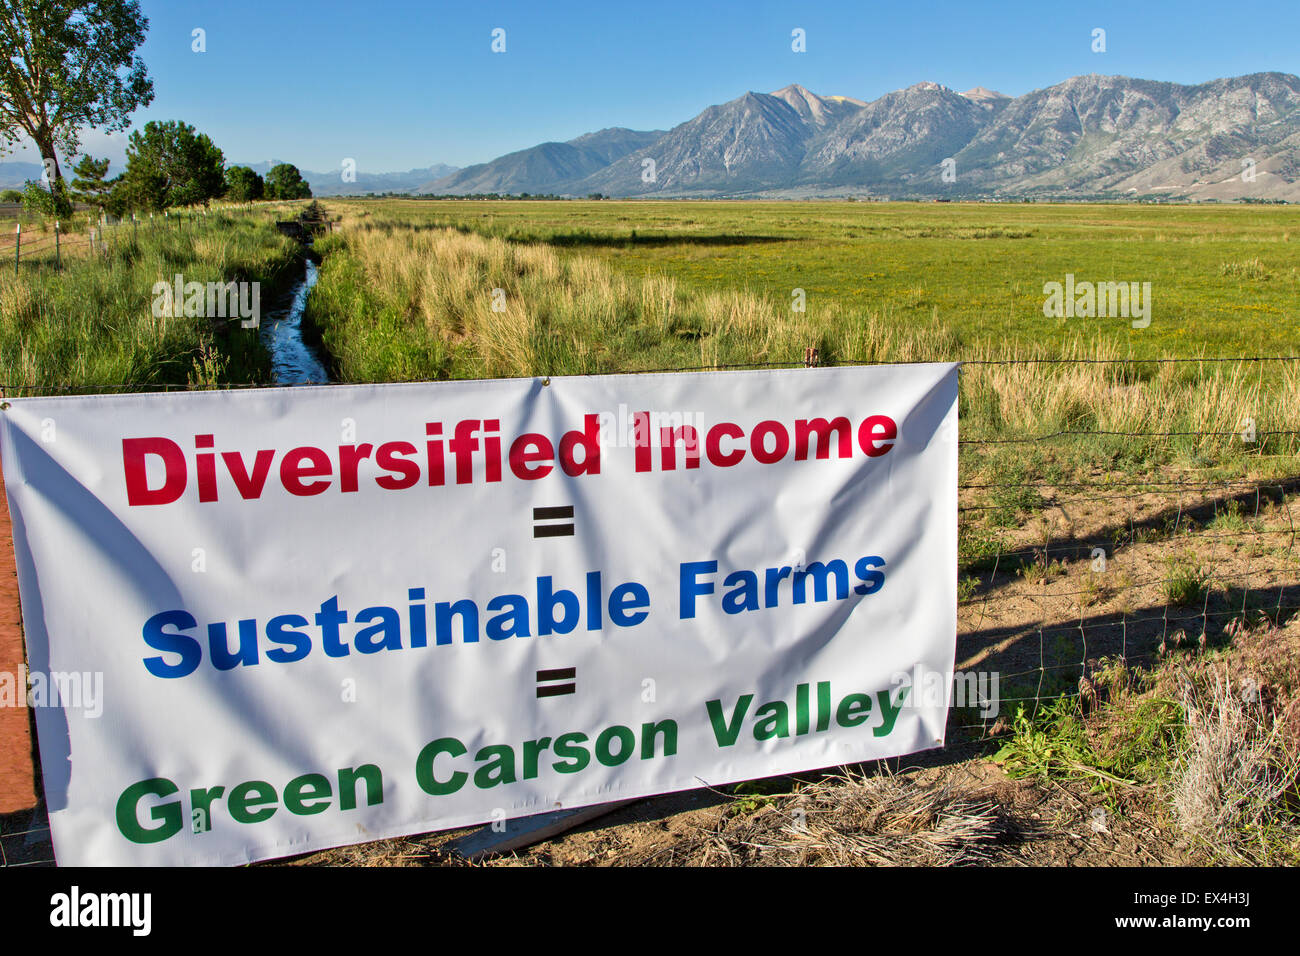 Irrigated pasture field  'Farming in Carson Valley'. - Stock Image